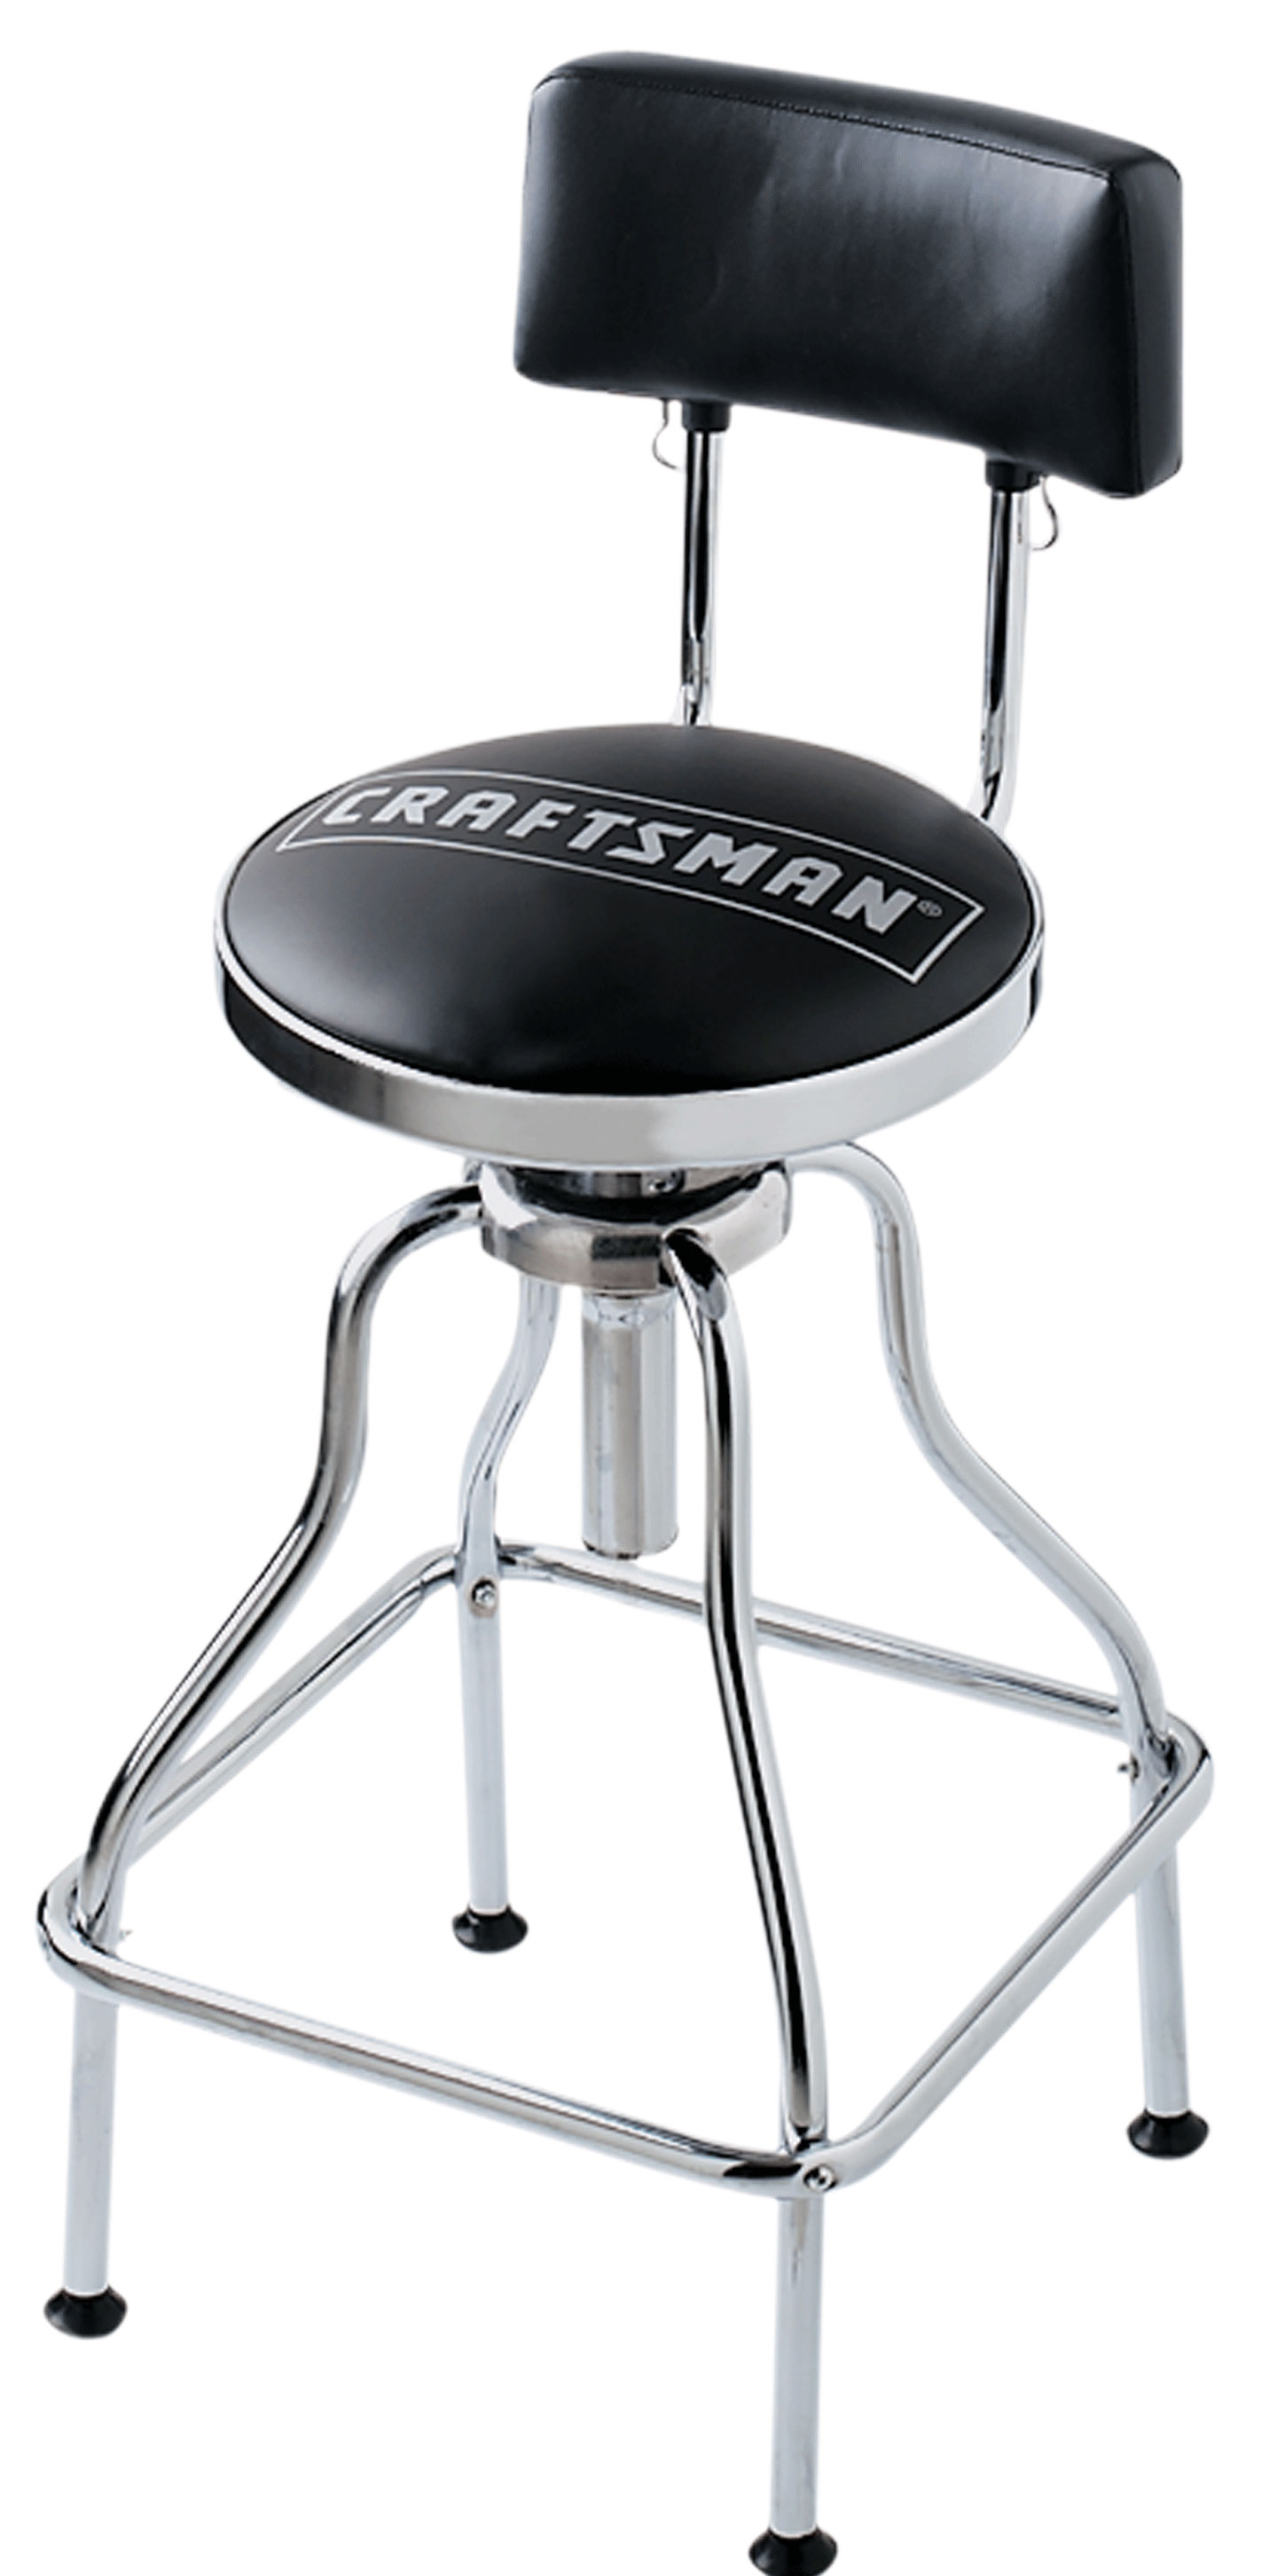 Stool Chair Sale Craftsman Adjustable Hydraulic Seat Work Shop Chrome